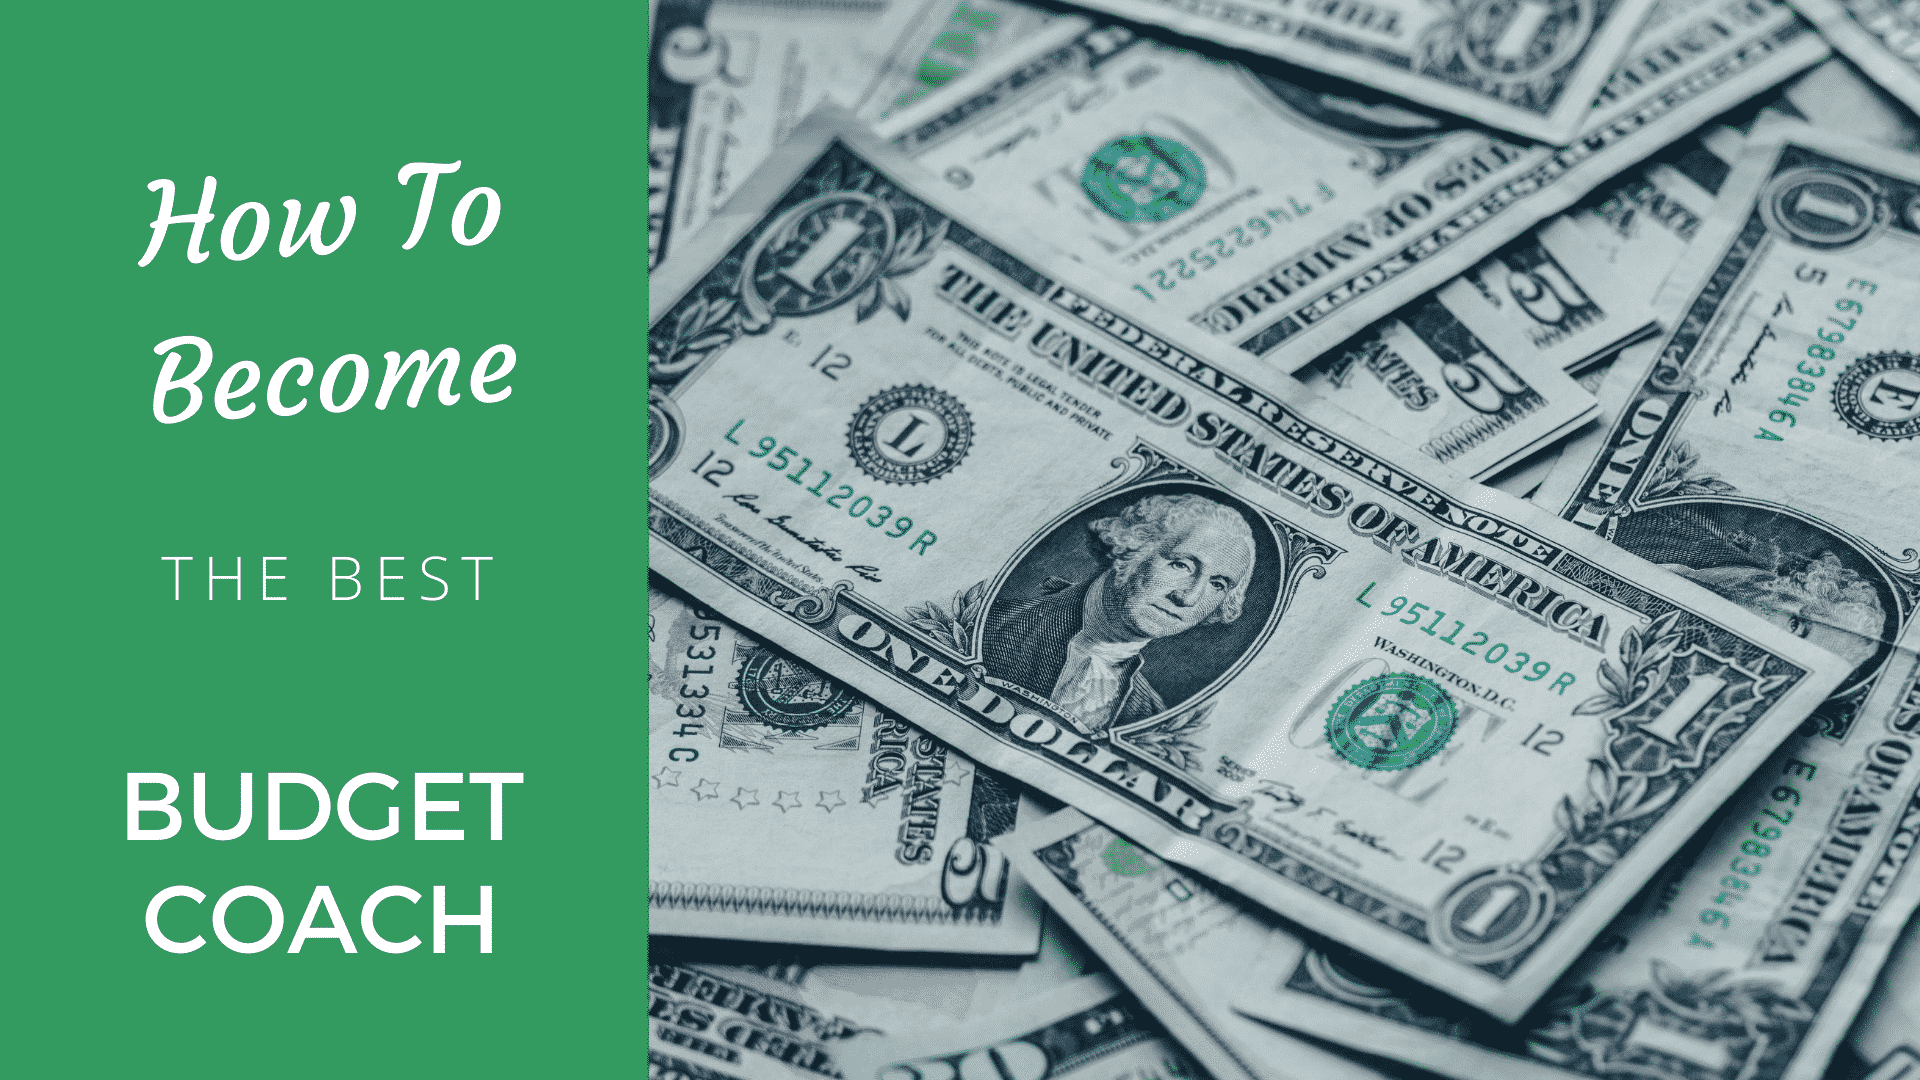 How to Become the Best Budget Coach in 2021? budget coach